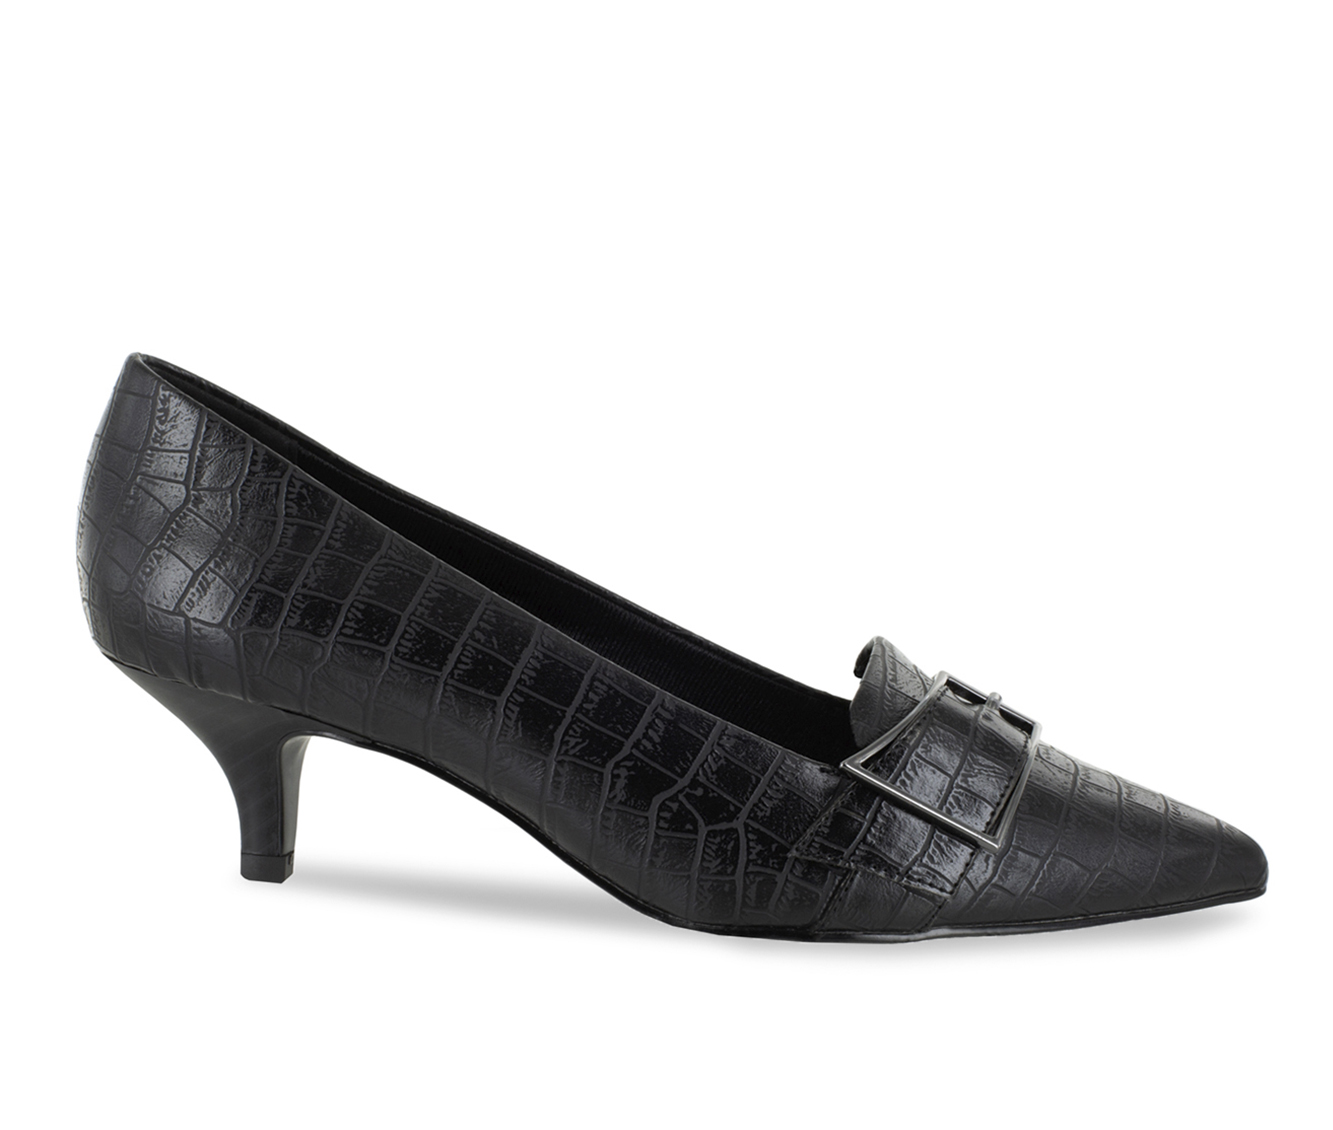 Easy Street Exquisite Women's Dress Shoe (Black Faux Leather)